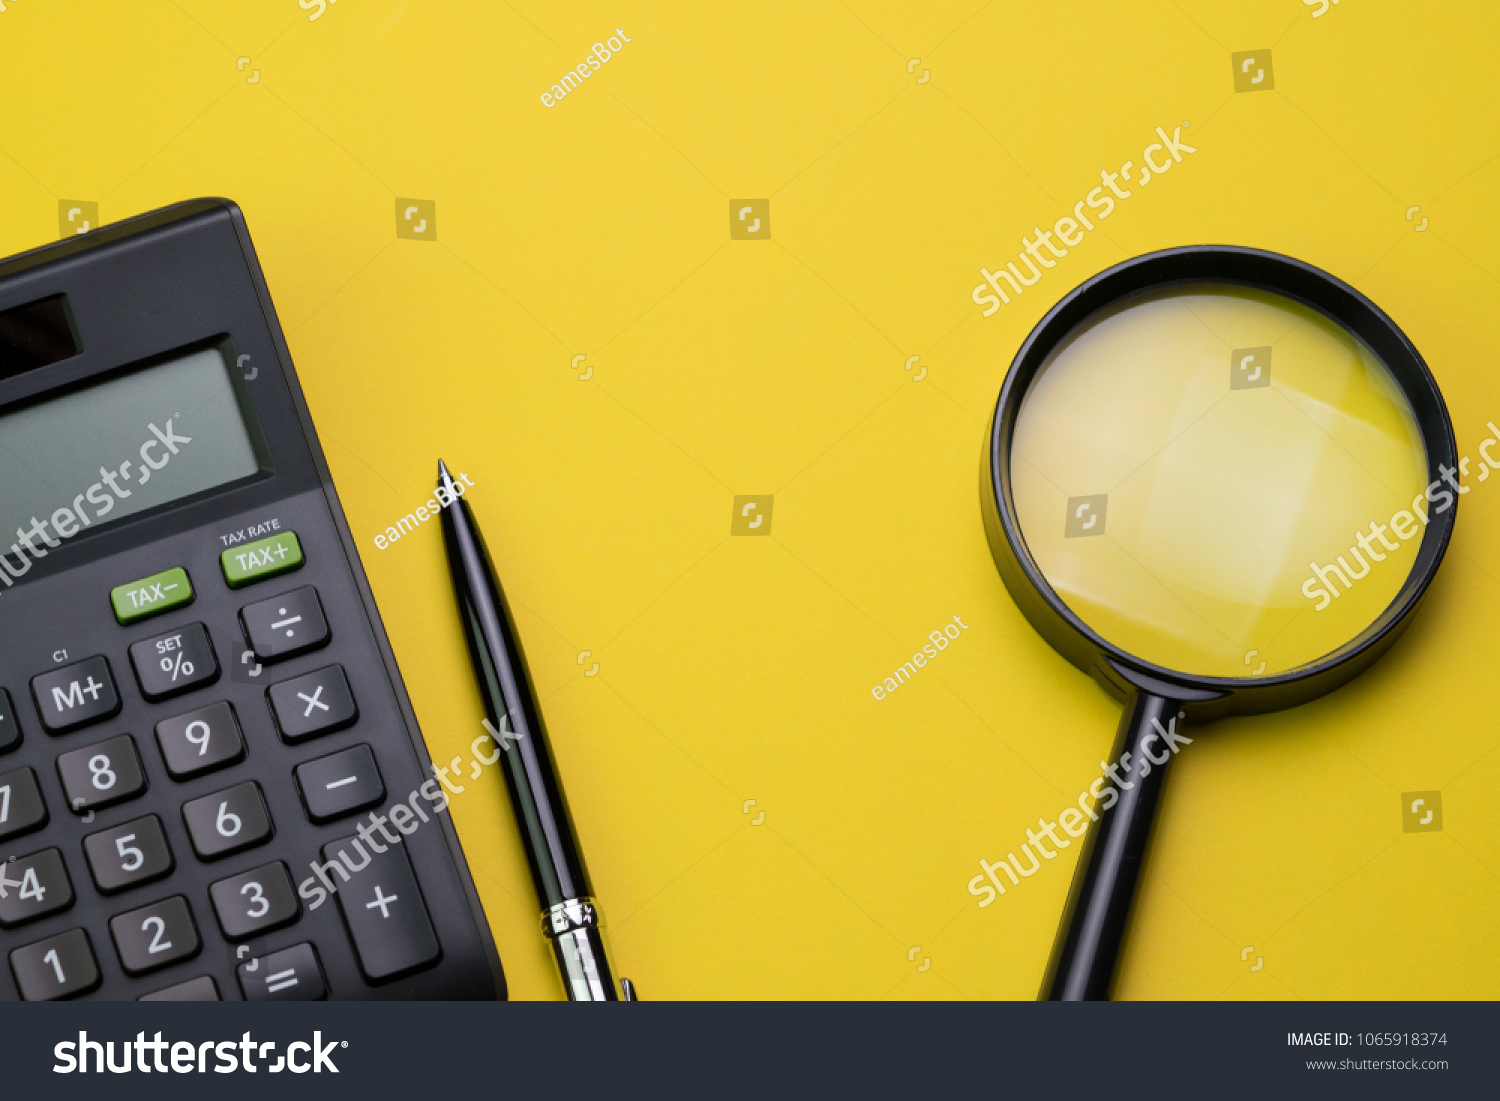 Expense, cost, budget, tax or investment calculation, flat lay or top view of black pen with calculator and magnifying glass on vivid yellow background table with copy space.